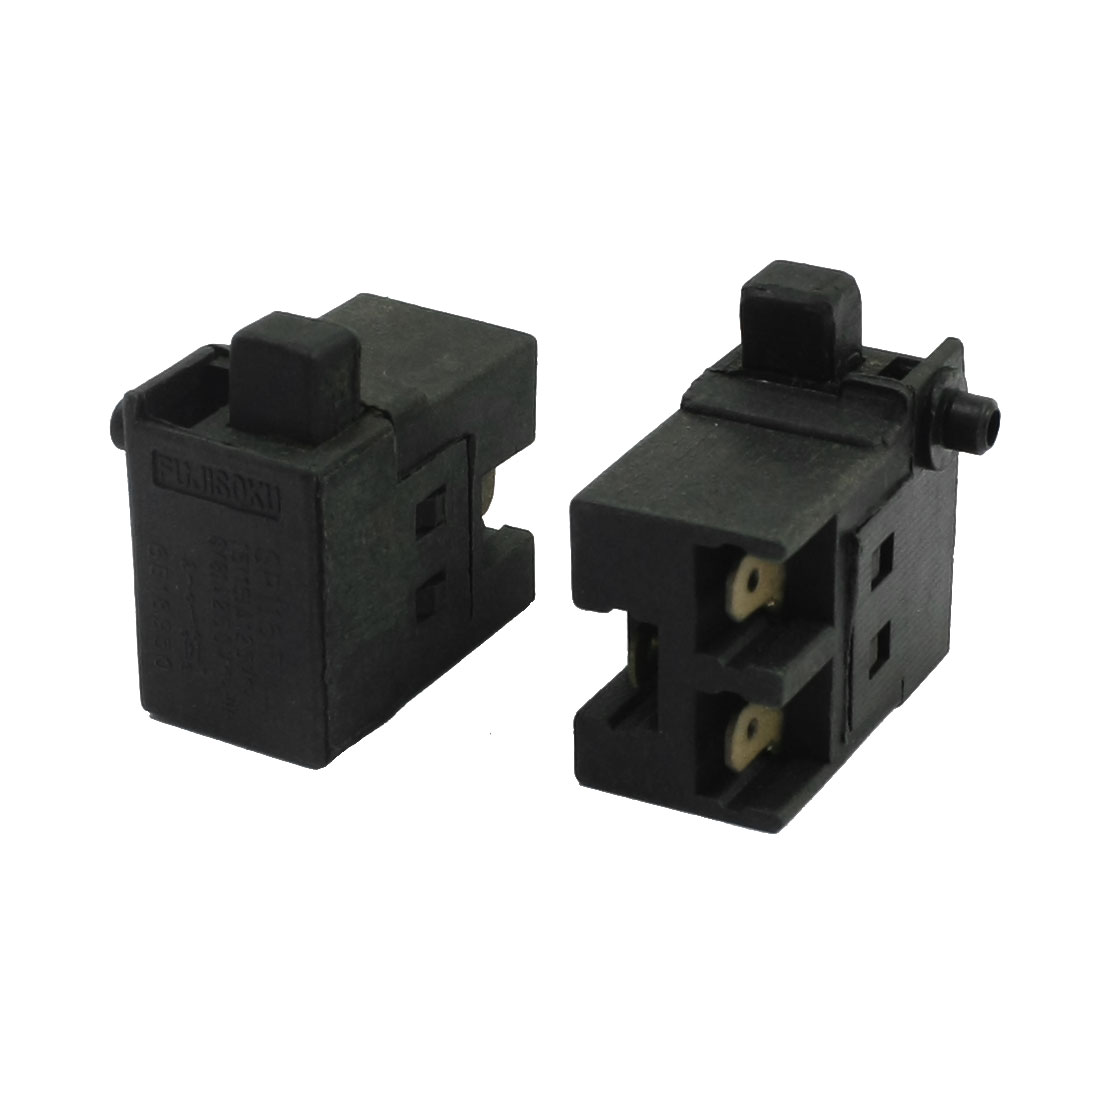 2pcs AC 125V 15A SPDT Momentary Power Switch for Makita 1030 Cutting Machine